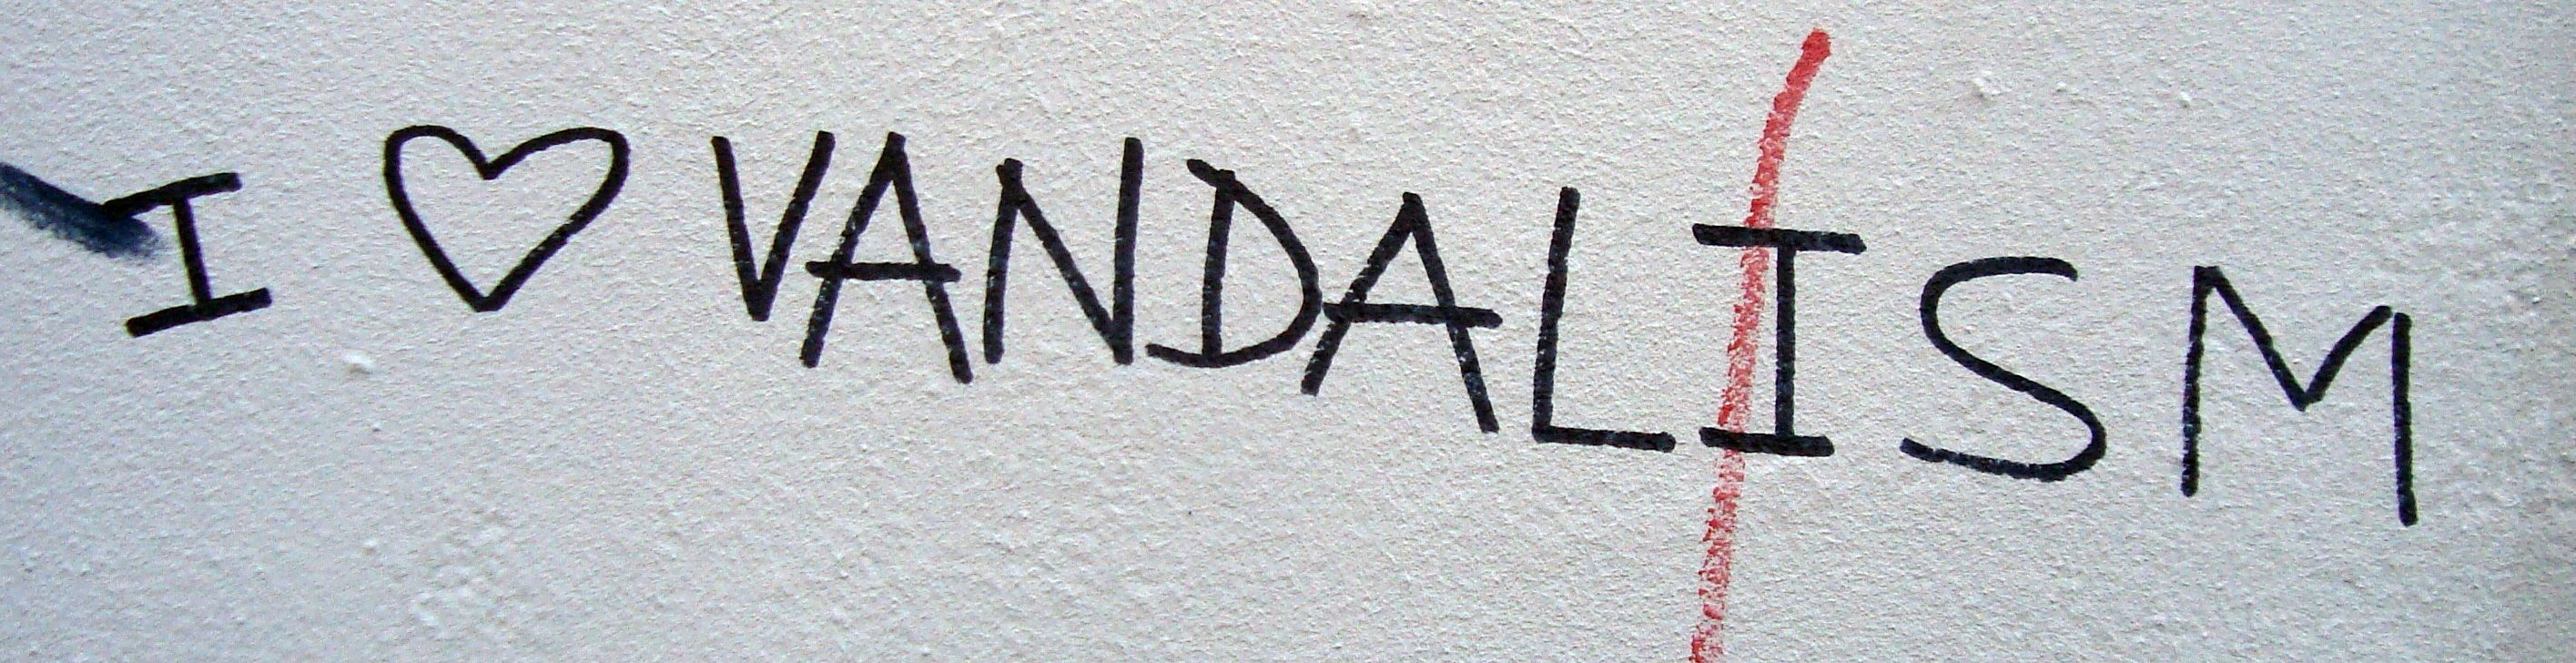 File Graffiti Vandalism Jpg Wikimedia Commons